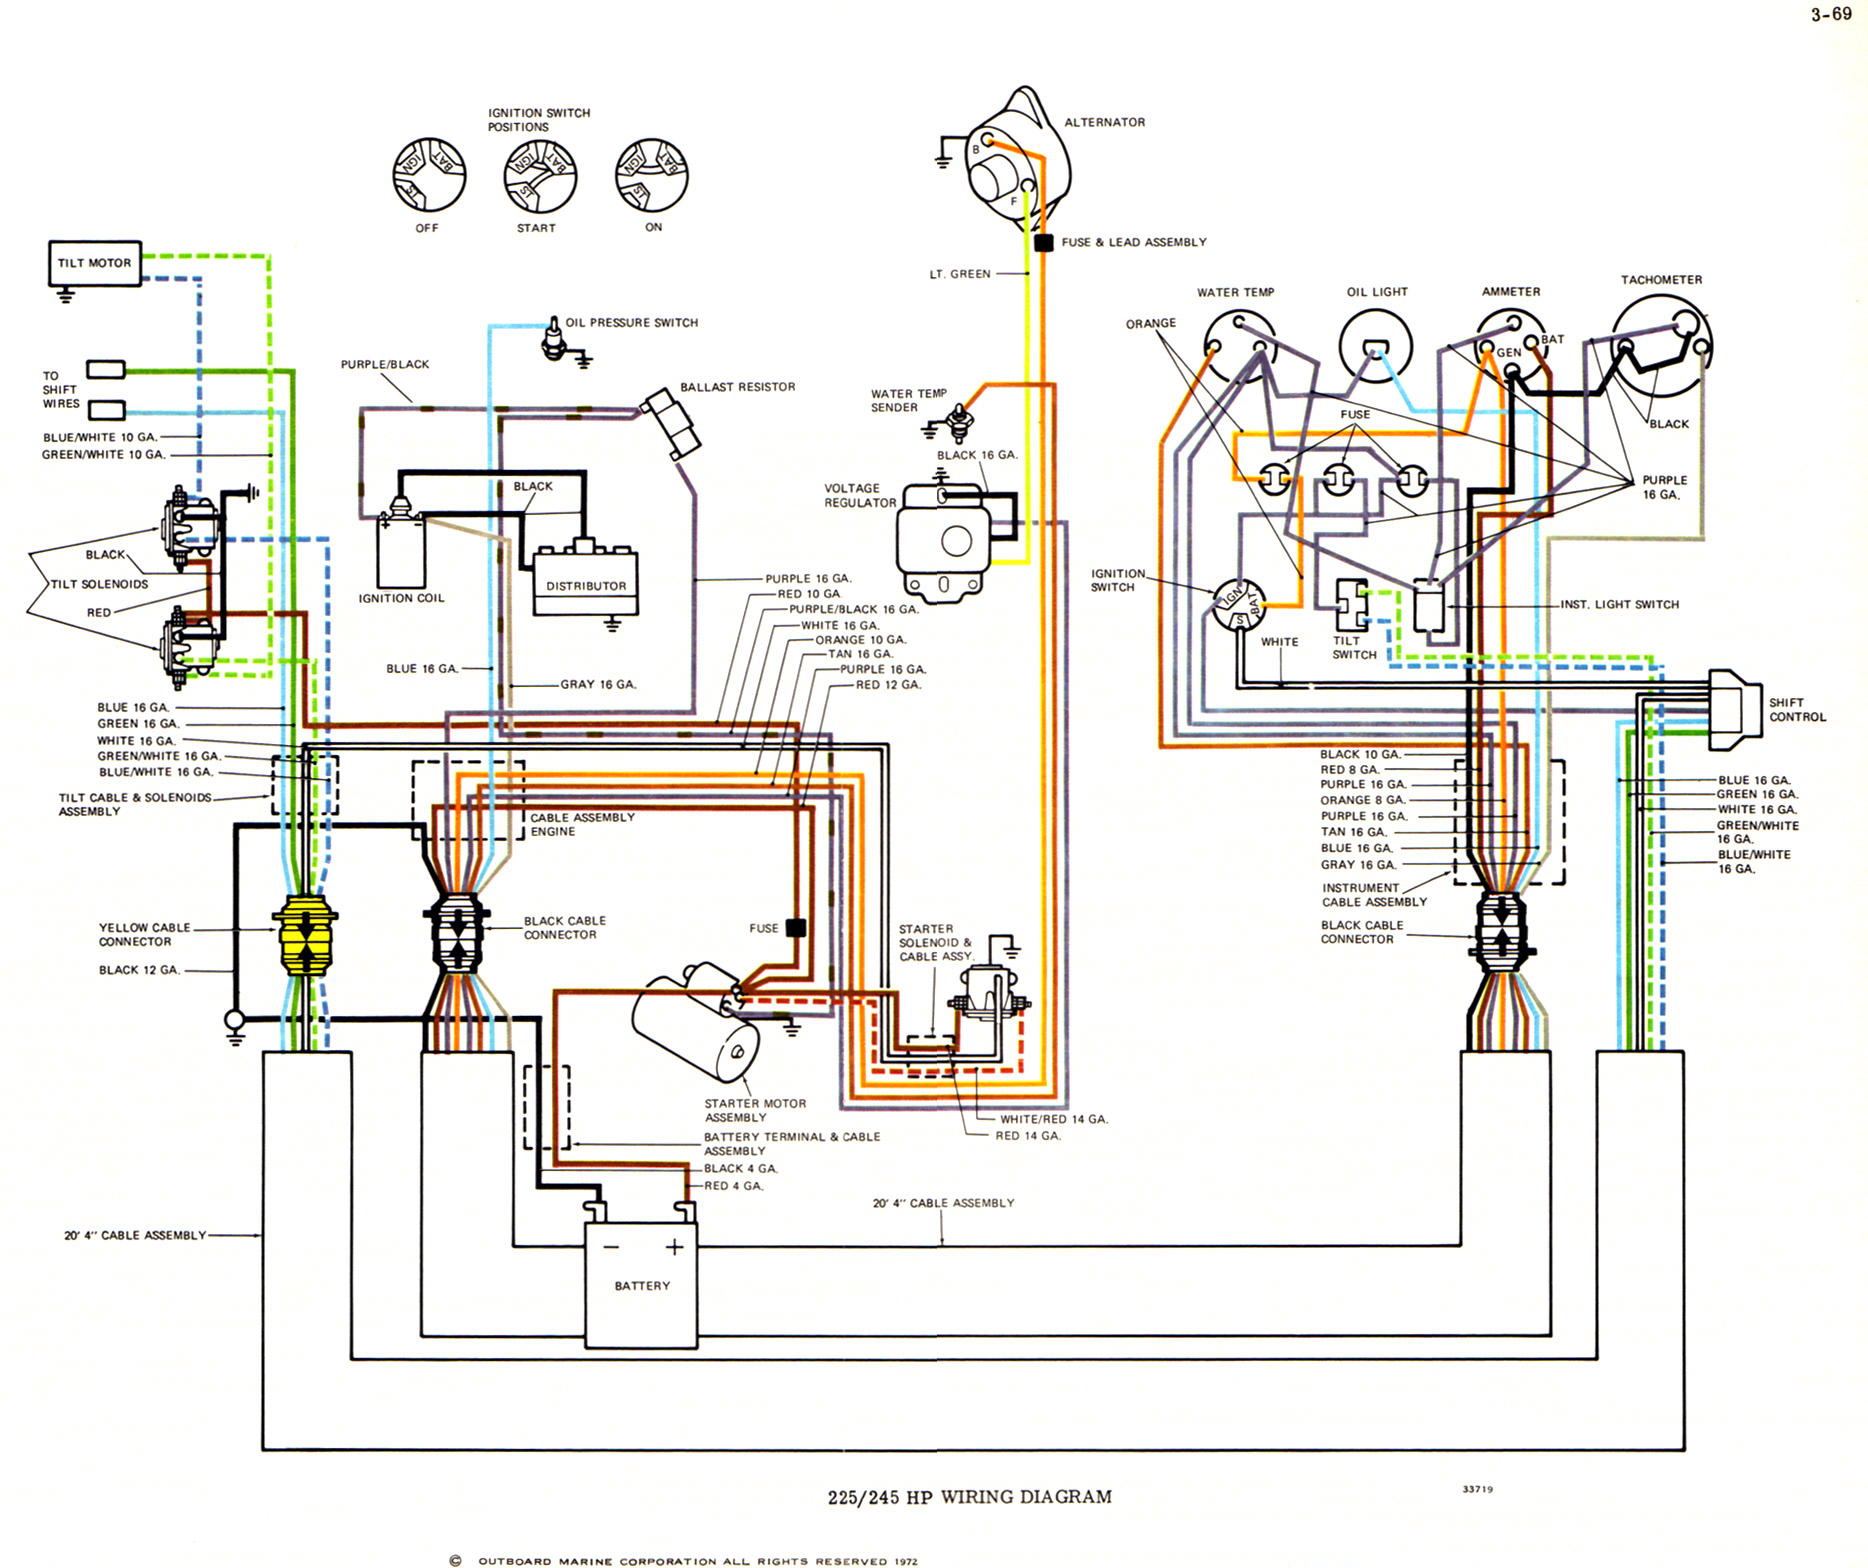 73_OMC_V8_all_big?resize=650400 wiring diagram for 2002 bayliner trim tilt tilt and trim problems Electric Water Pump Wiring Diagram at creativeand.co